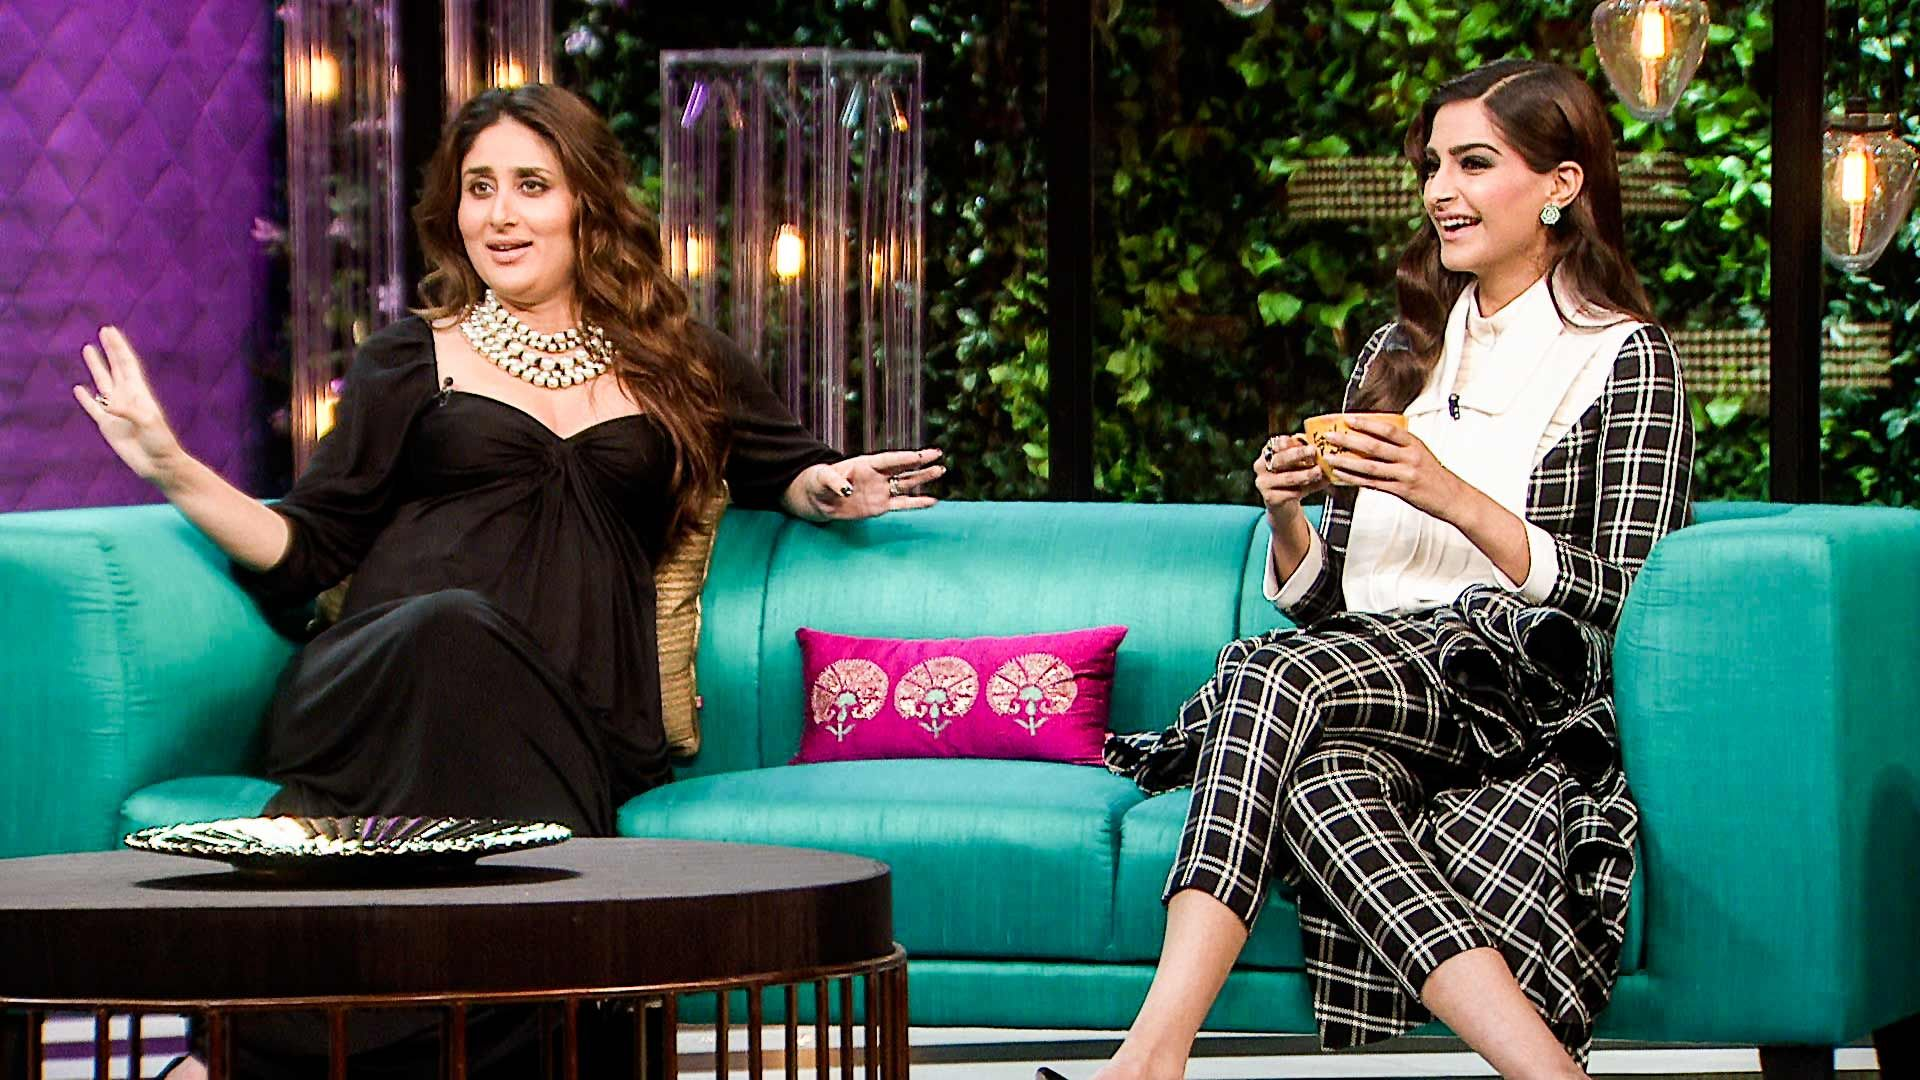 Koffee with Karan Season 6 Episode 11 with Sonam Kapoor, Rhea Kapoor & Harshvardhan Kapoor